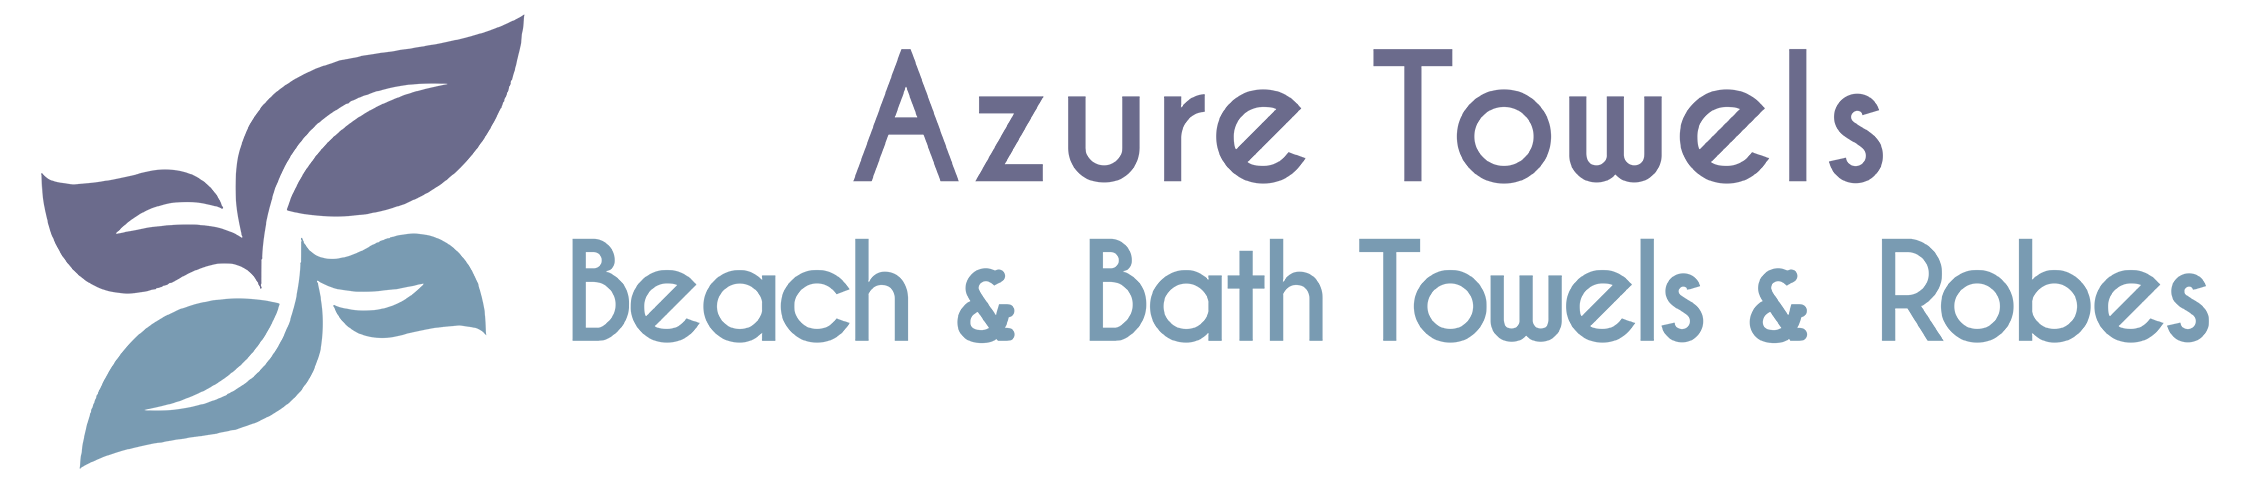 Azure Towels